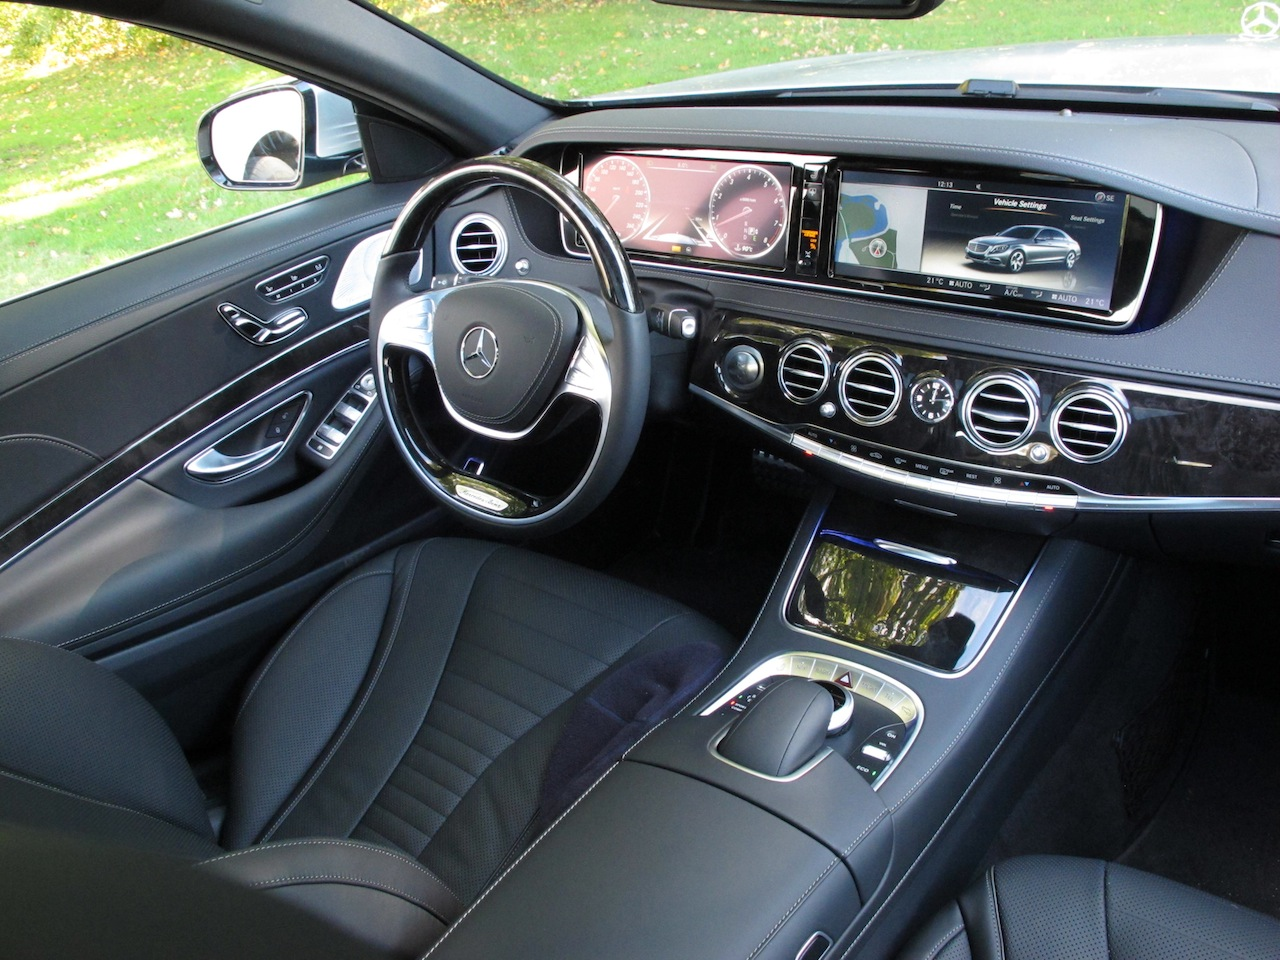 2014 mercedes benz s550 photo gallery cars photos test drives and reviews canadian auto. Black Bedroom Furniture Sets. Home Design Ideas